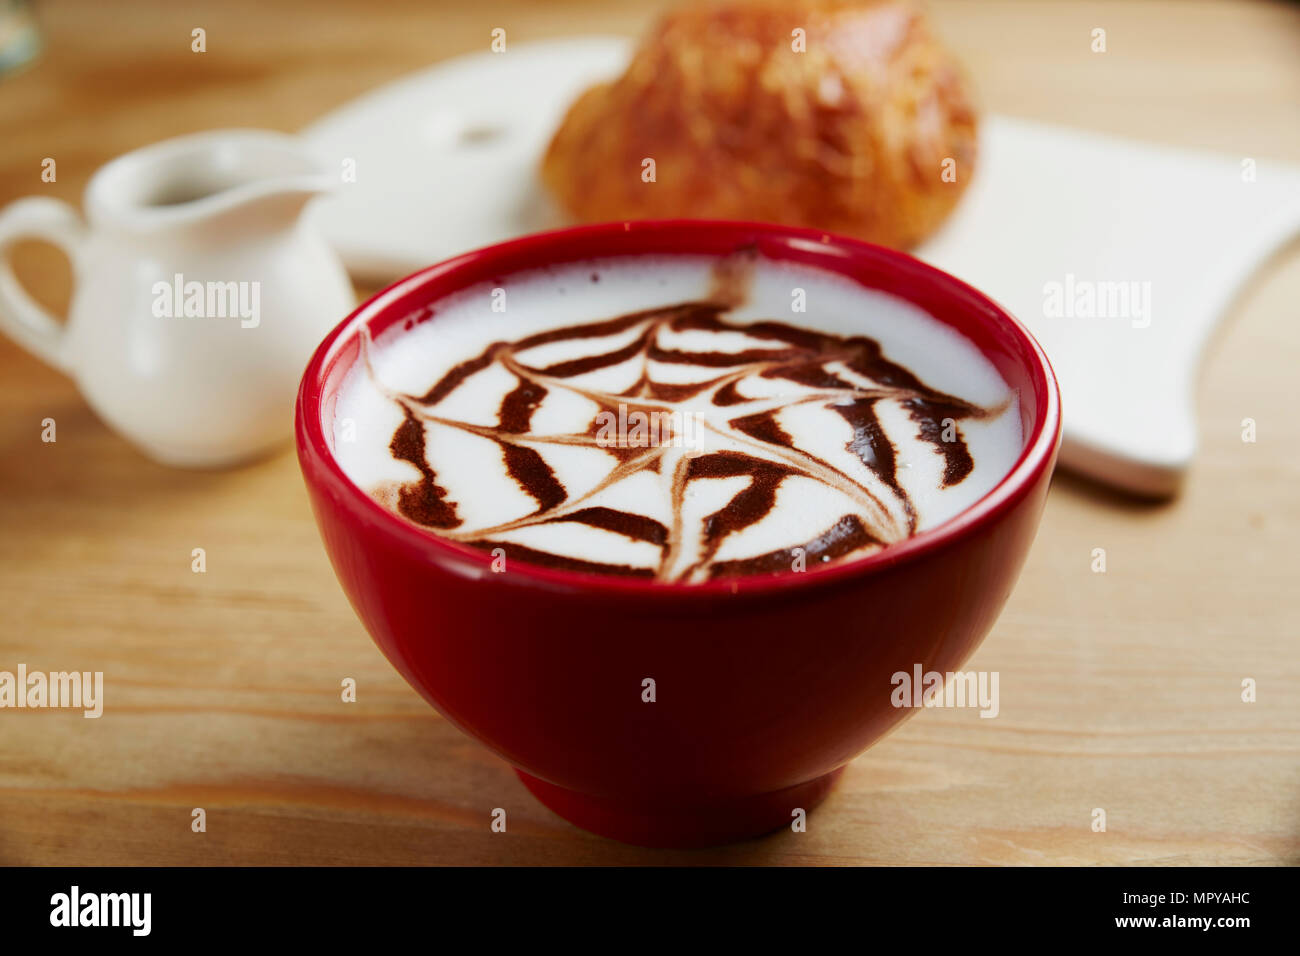 Close-up of frothy drink served in coffee cup on table at cafe - Stock Image